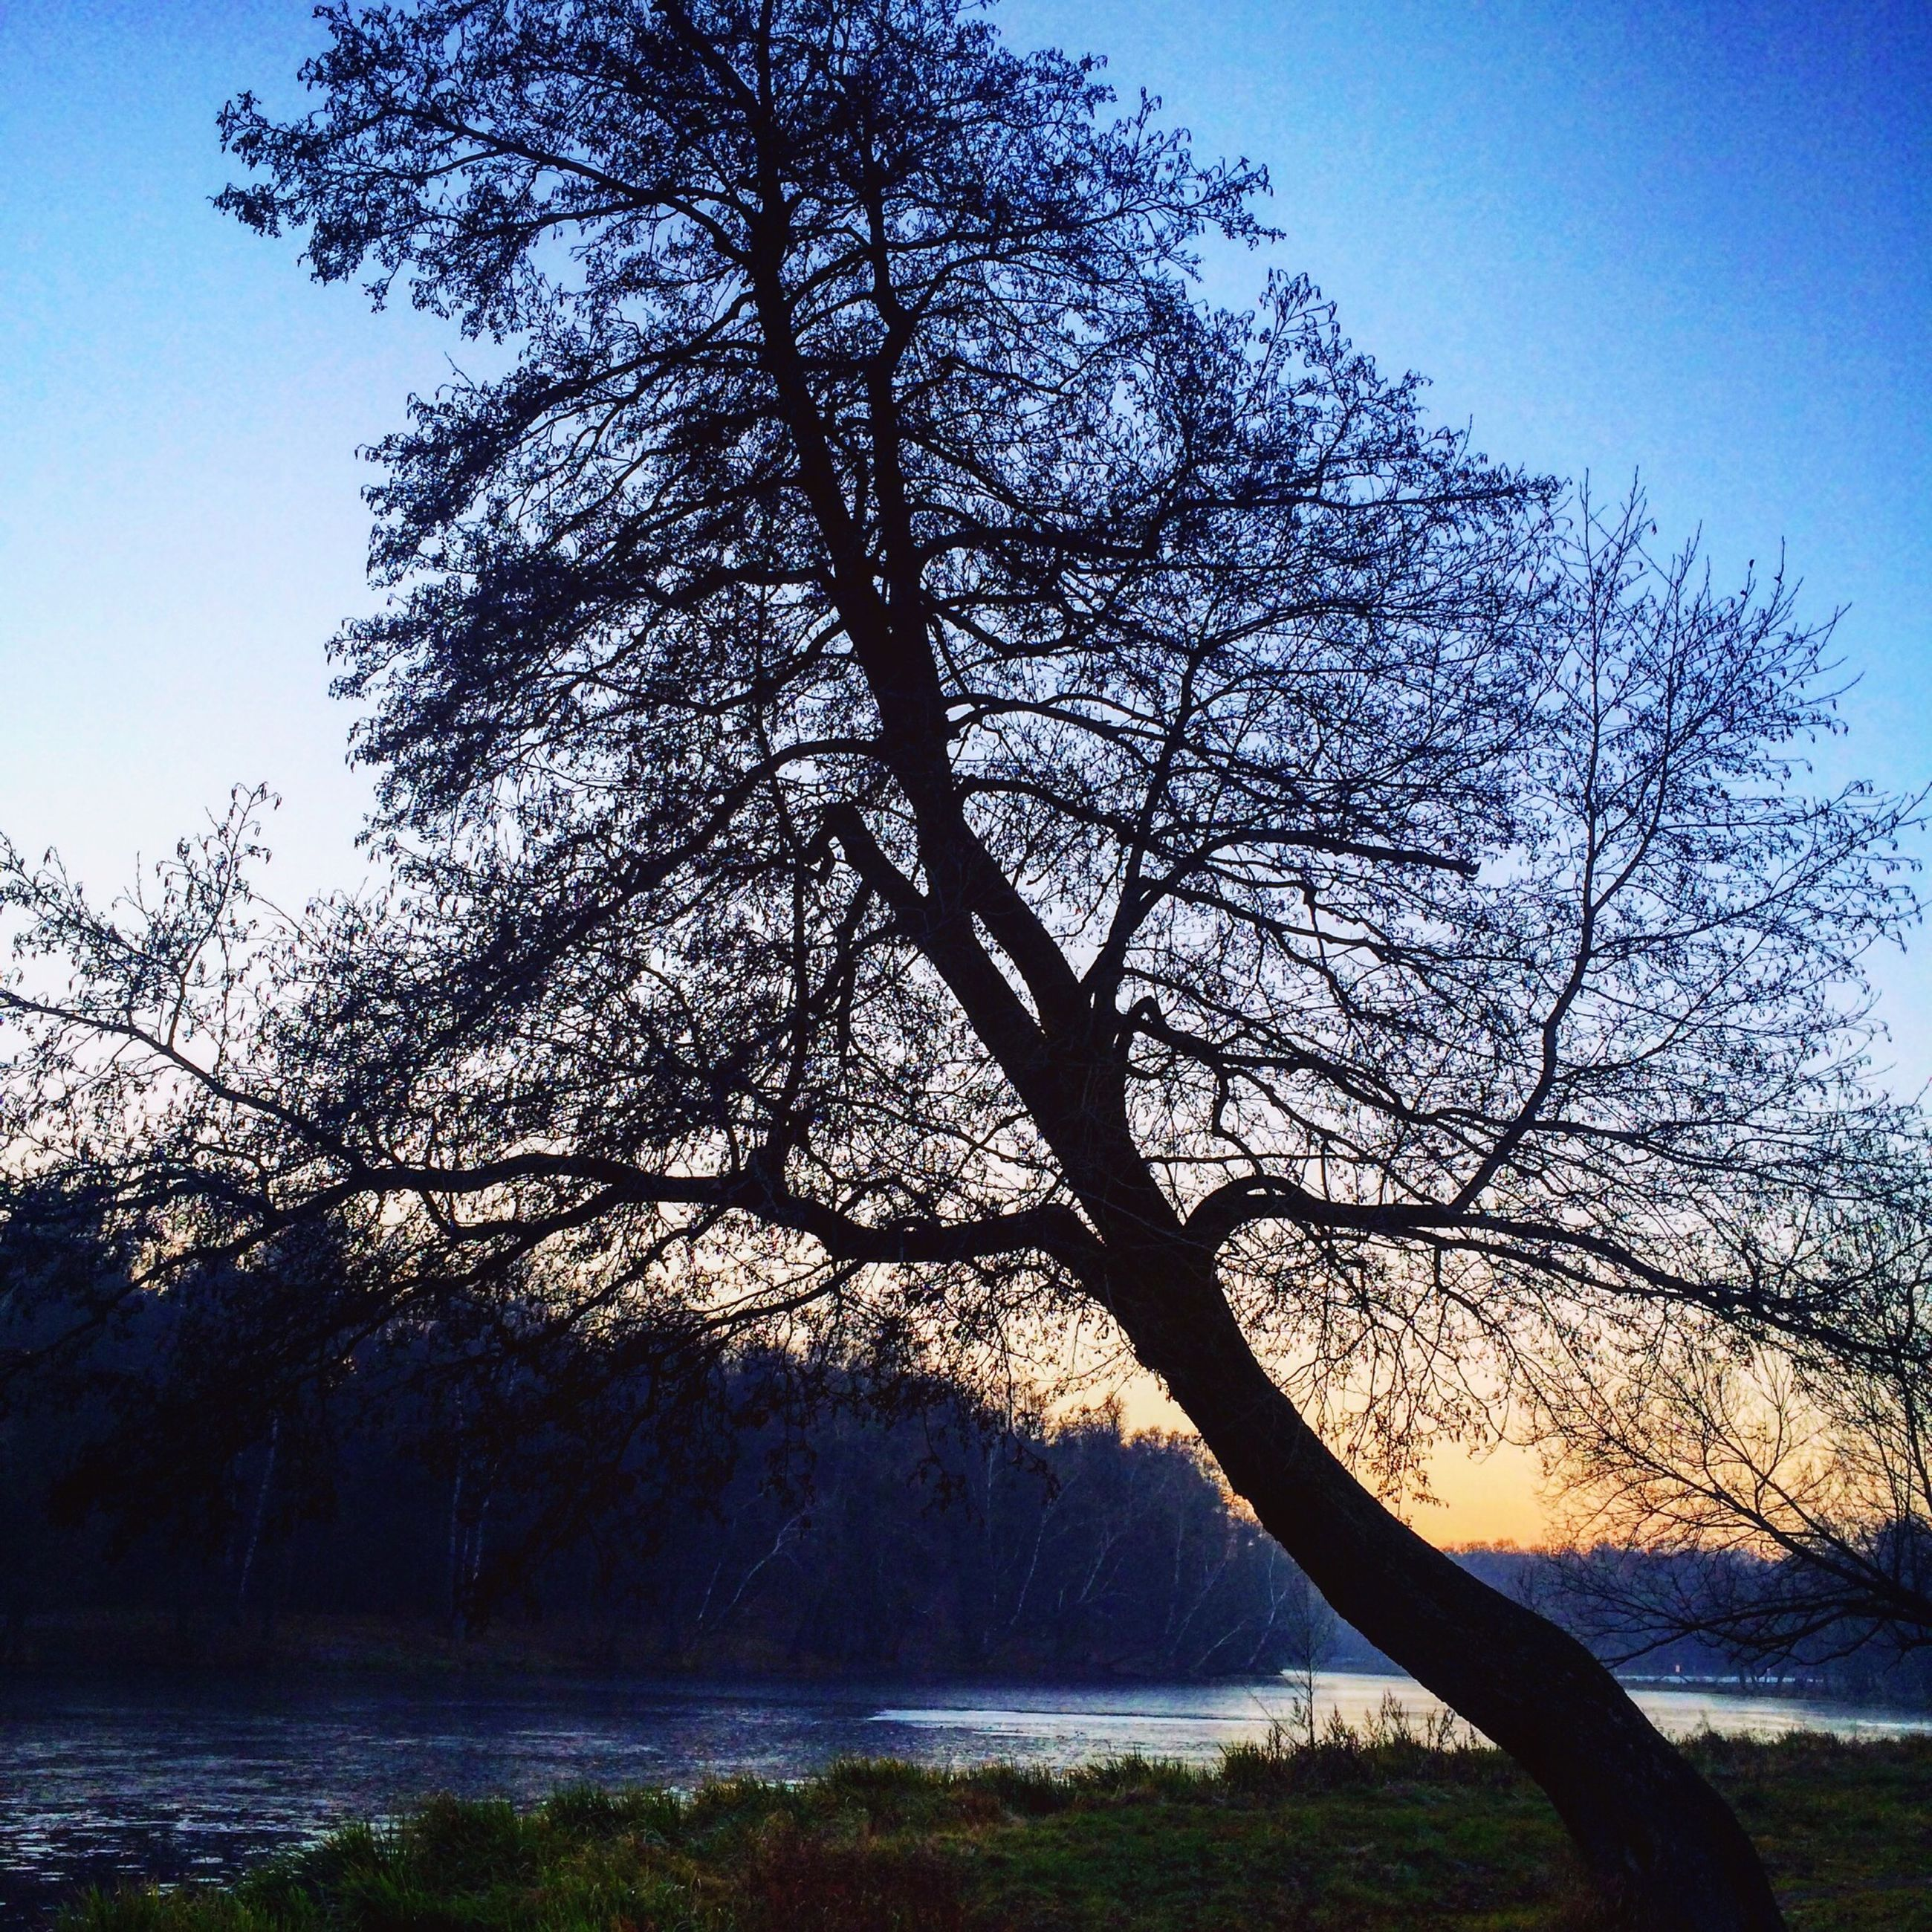 tree, water, tranquility, tranquil scene, scenics, branch, beauty in nature, bare tree, clear sky, nature, sky, silhouette, tree trunk, lake, idyllic, sea, sunlight, non-urban scene, growth, blue